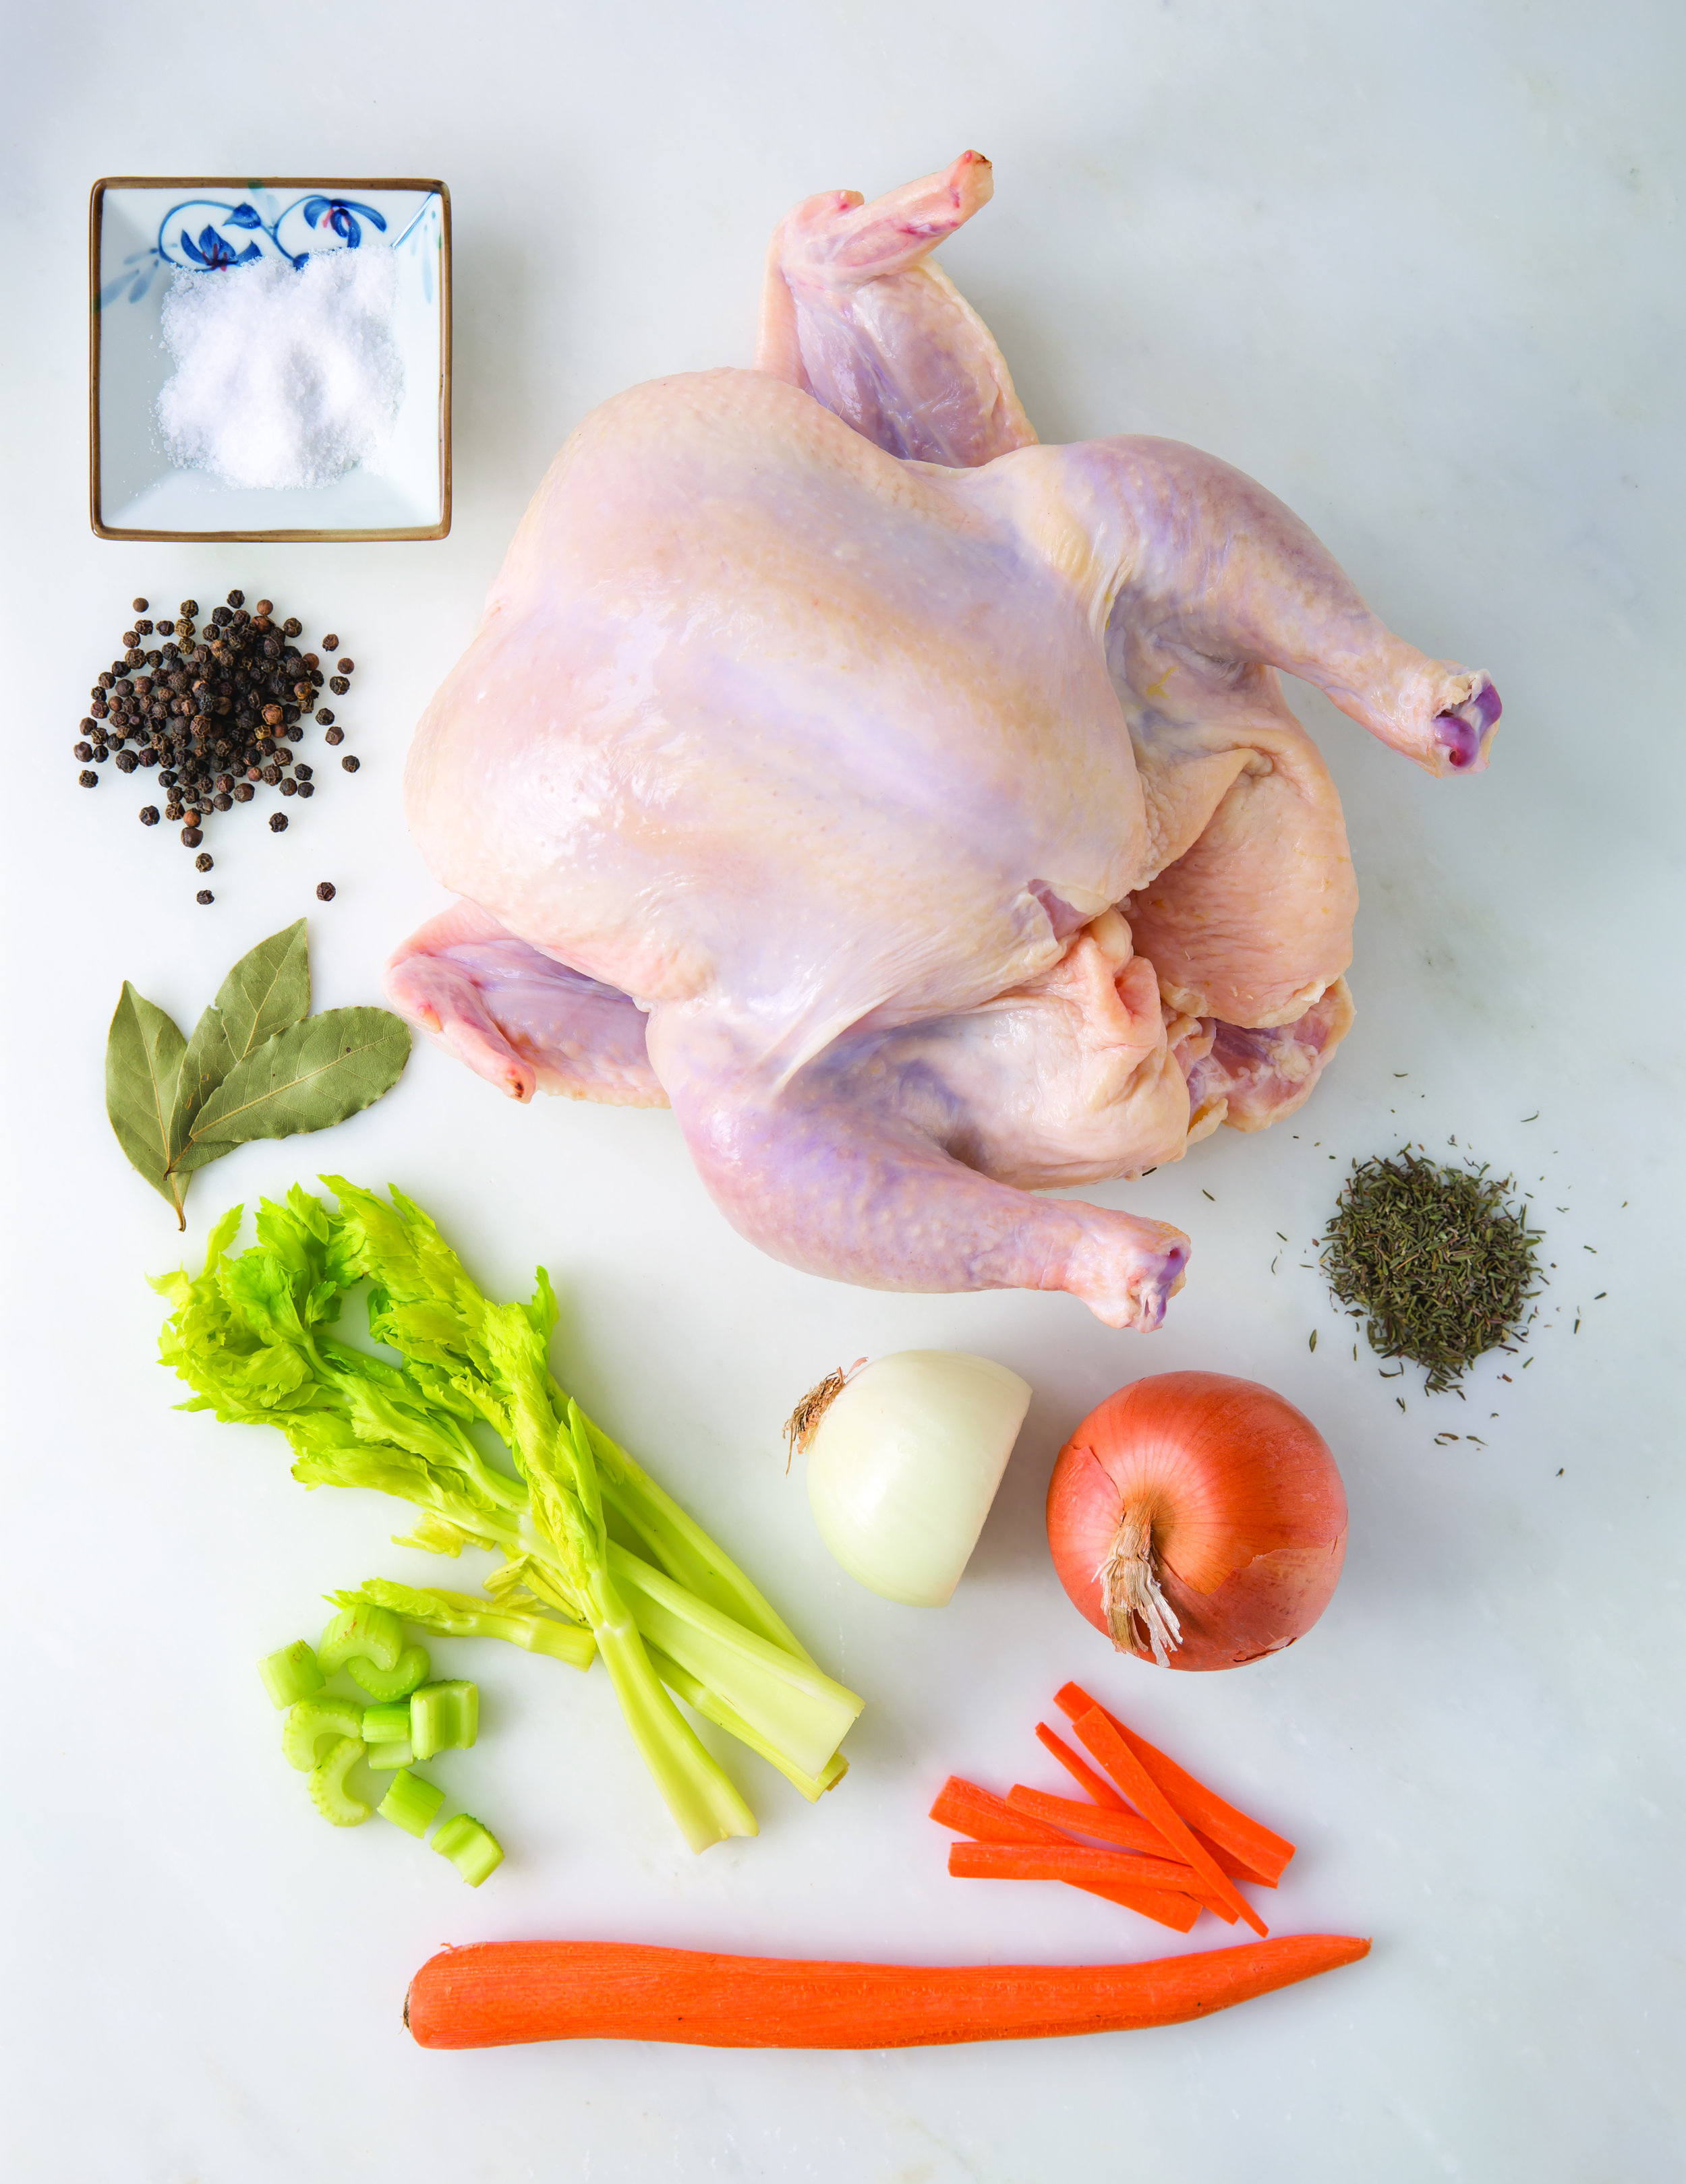 Copy of tsc 918 CHICKEN STOCK -9168 copy.jpg